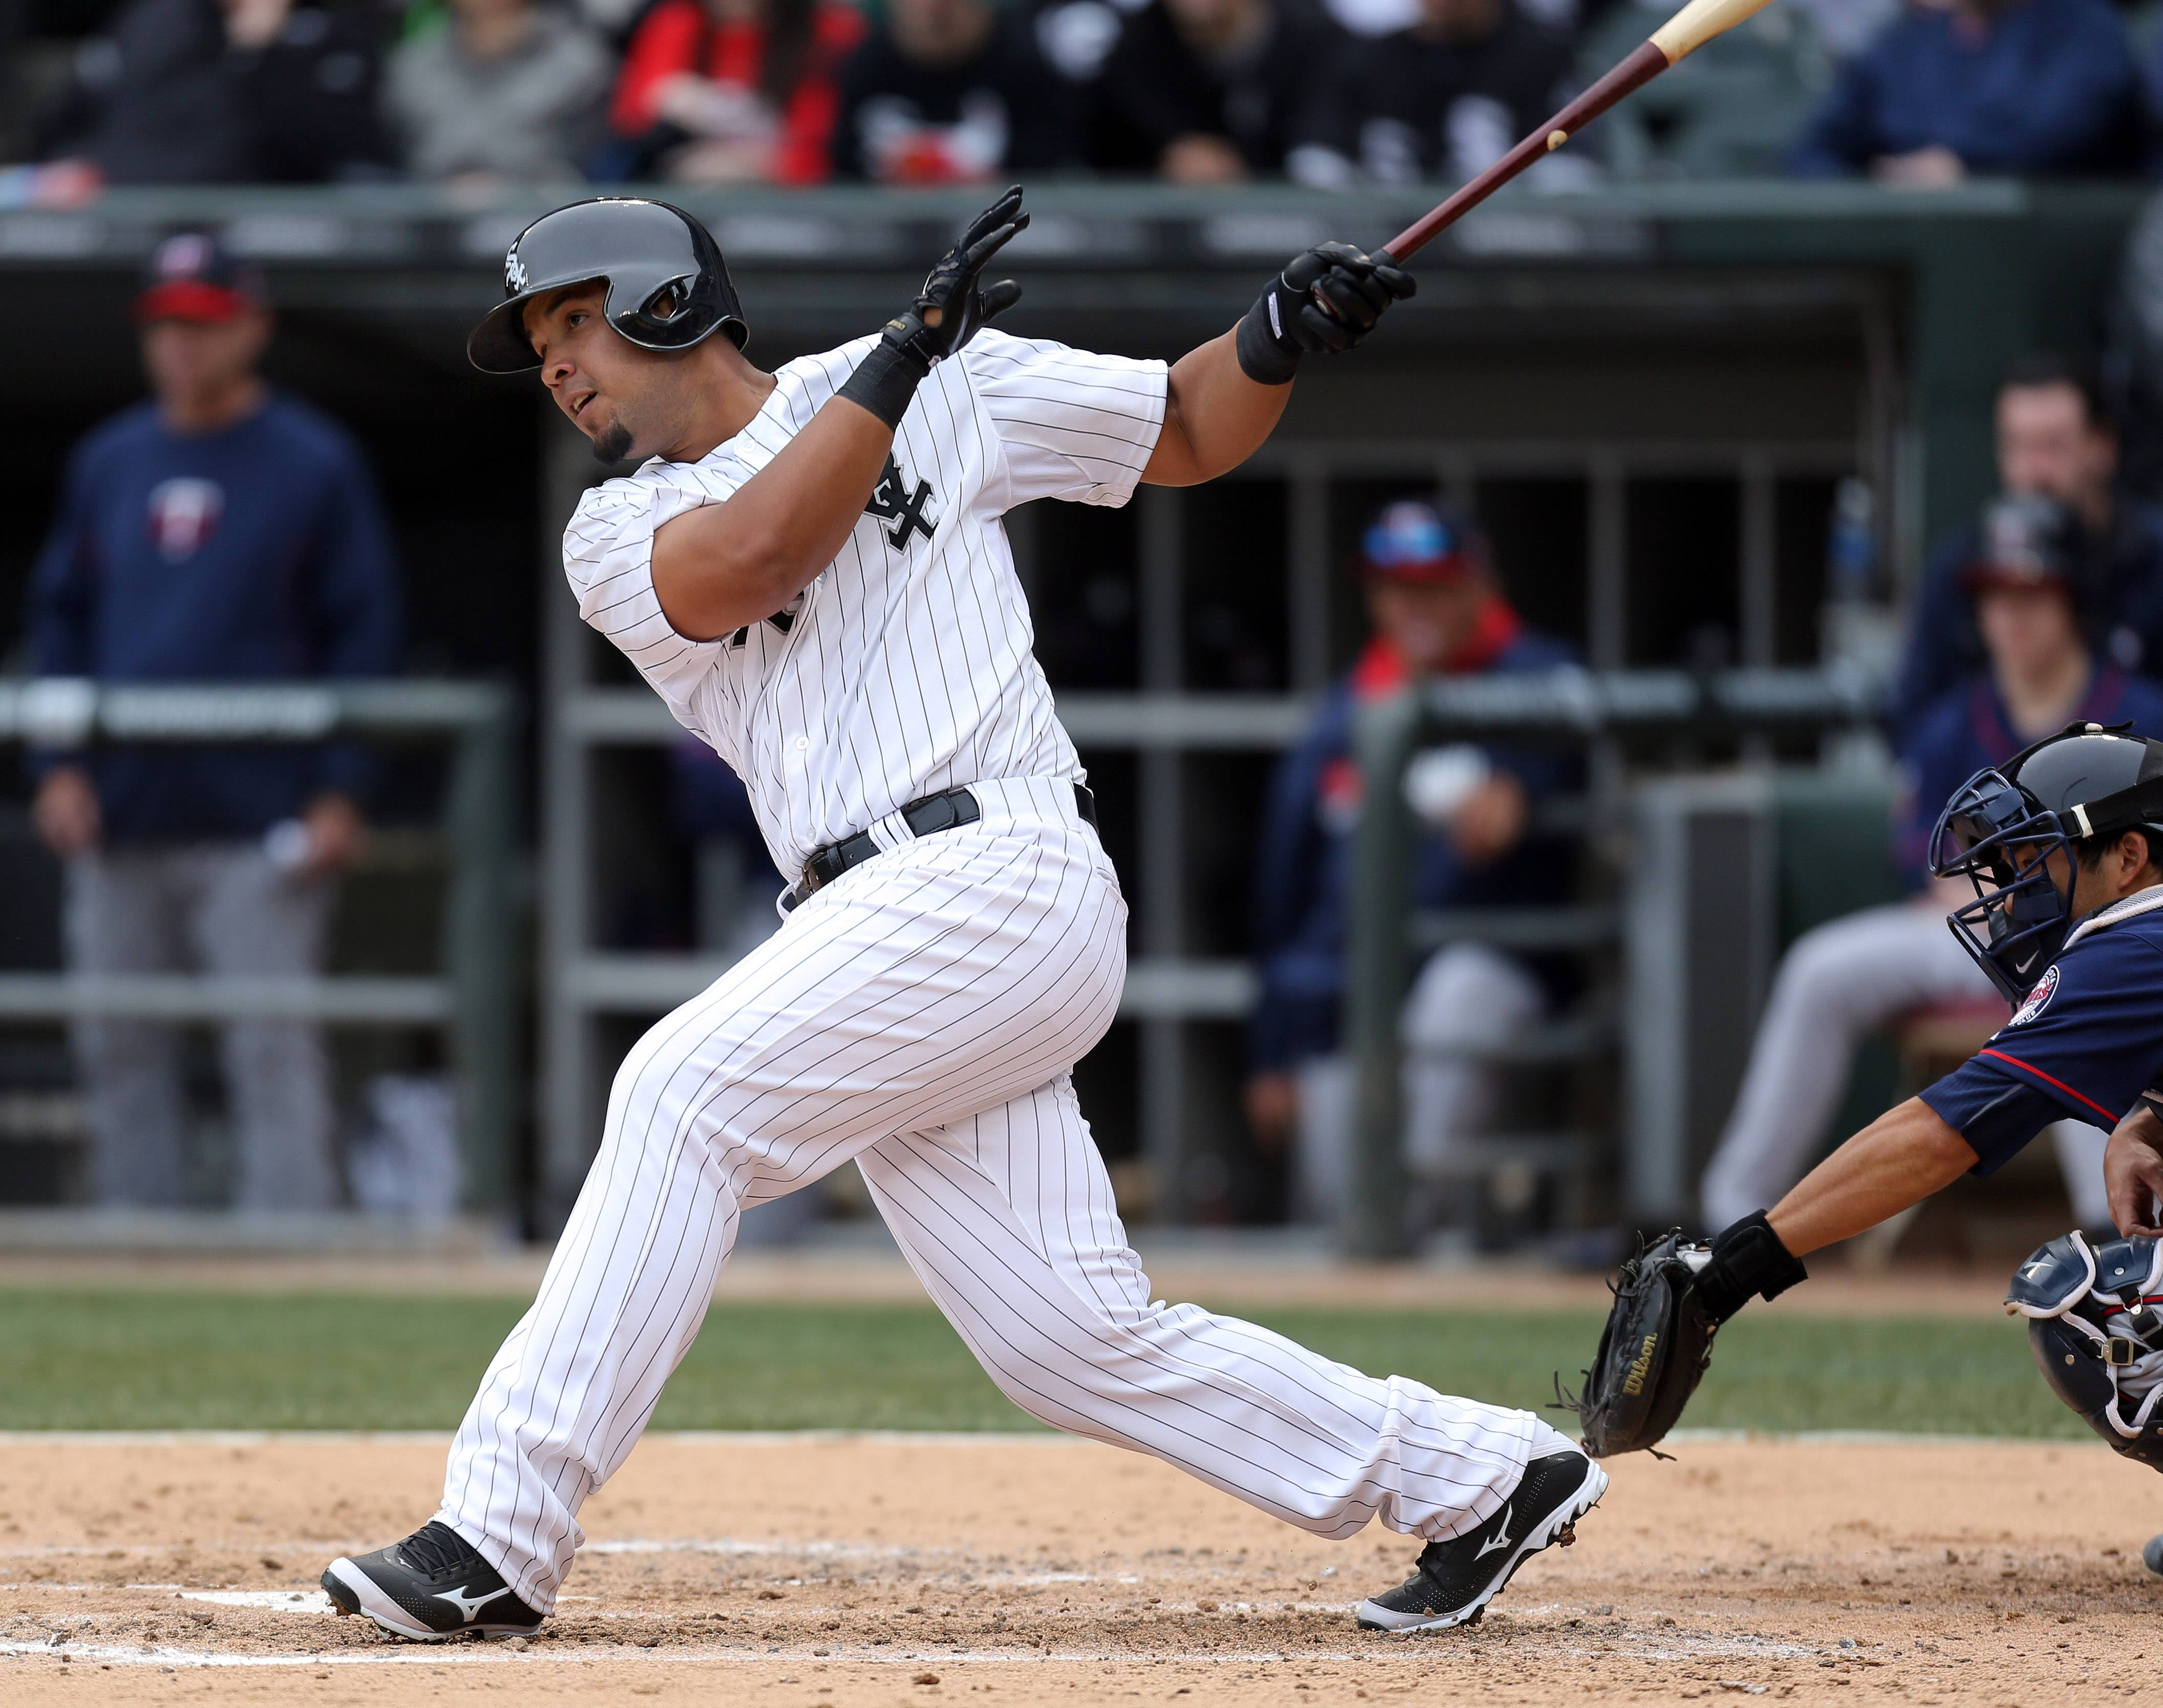 Chicago White Sox first baseman Jose Abreu connects during the White Sox home opener against the Minnesota twins Monday at US Cellular Field.